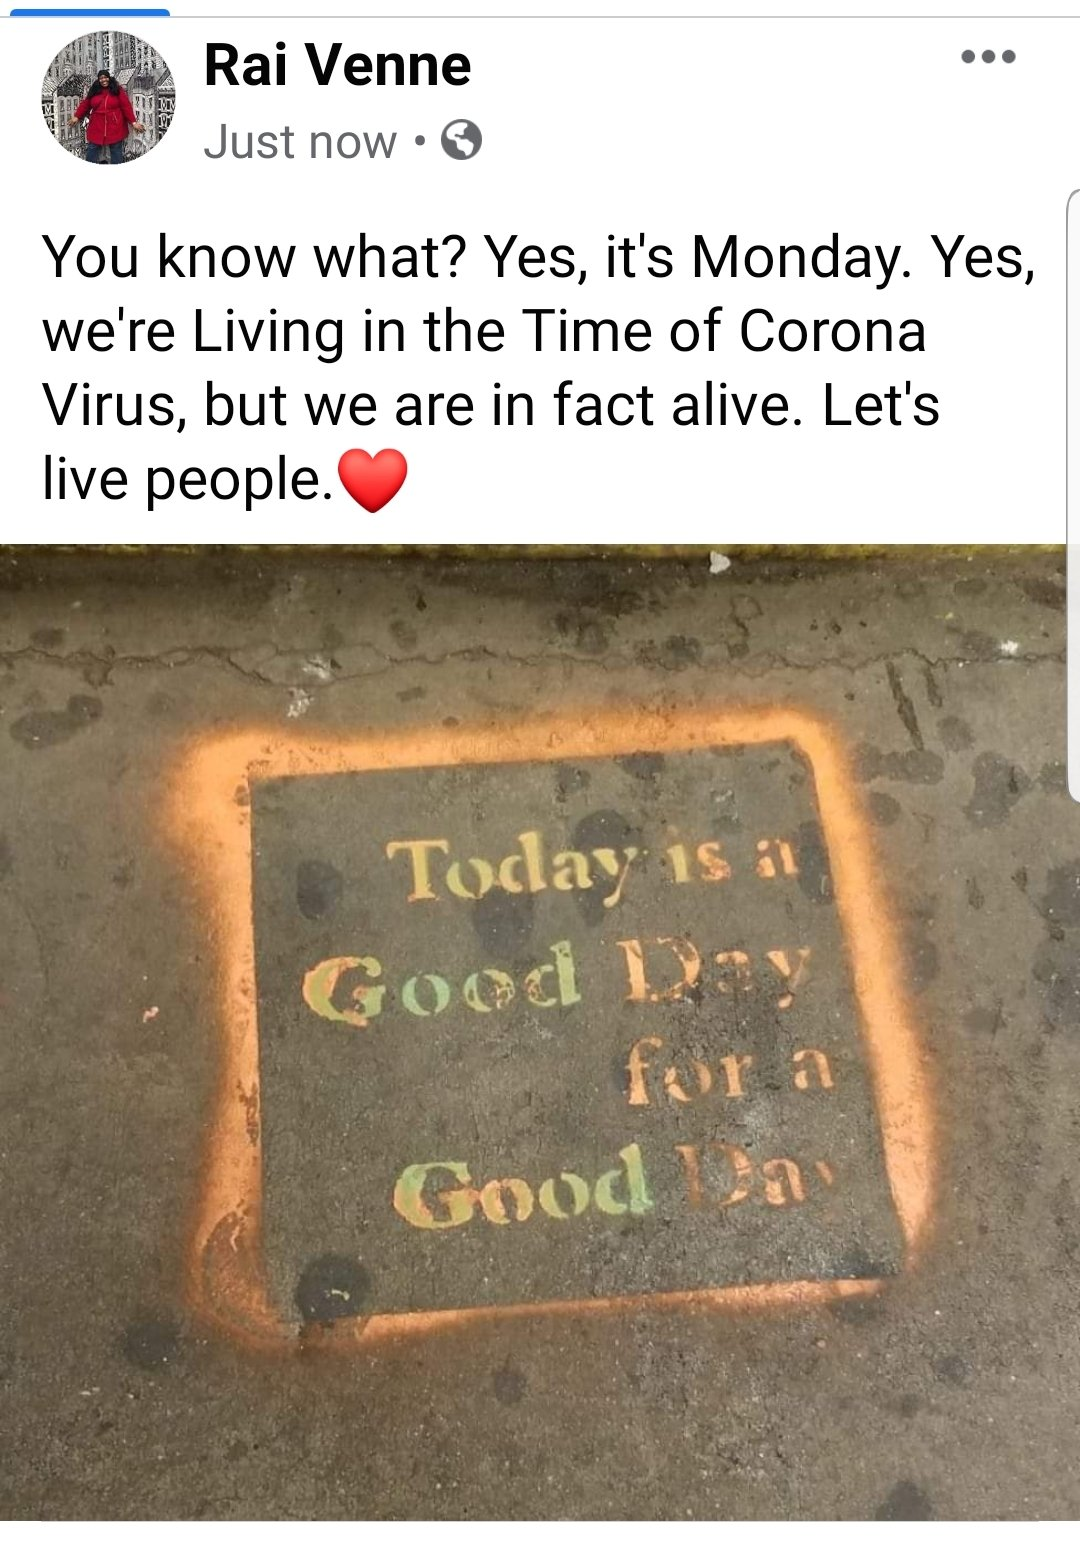 Photo of sidewalk graffiti that reads: Today is a Good Day for a Good Day.  My added words: You know what? Yes, it's Monday. Yes, we're Living in the Time of Corona Virus, but we are in fact alive. Let's live people.❤